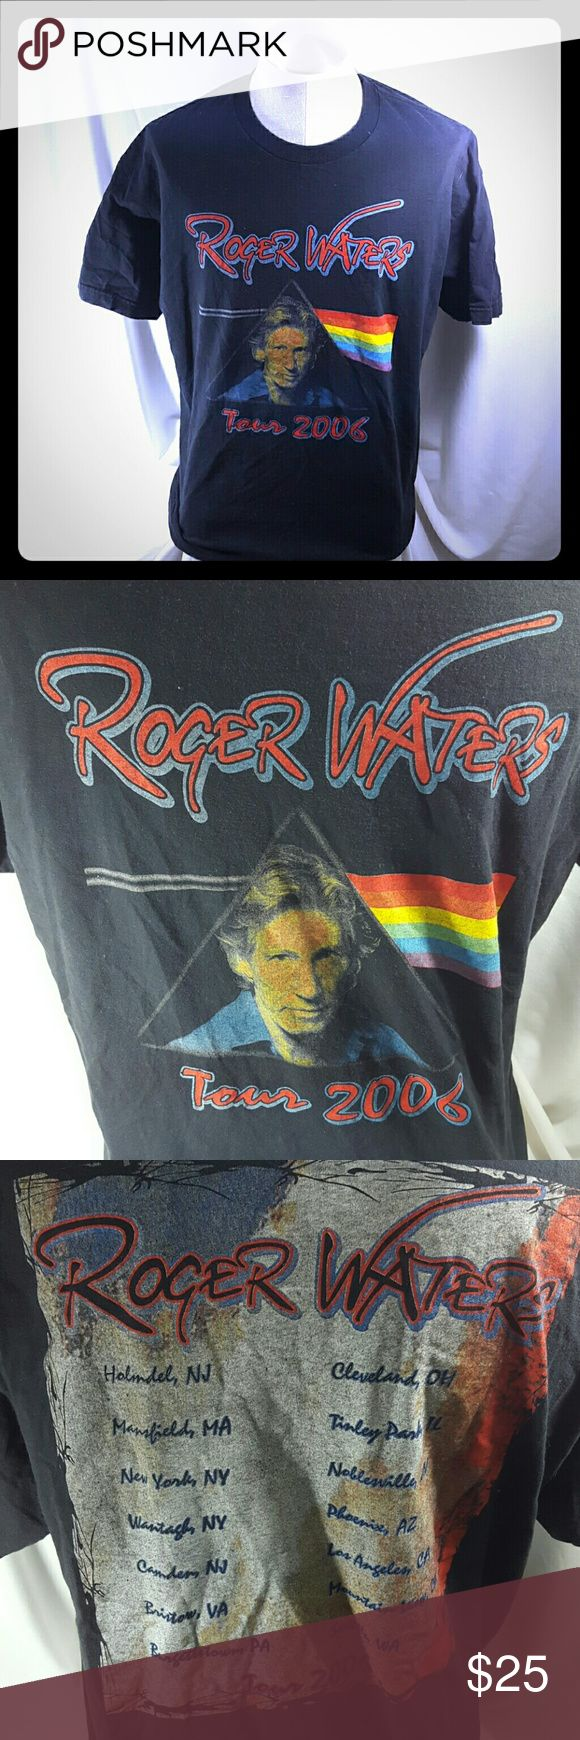 Roger Waters Pink Floyd 2006 Tour Concert T Shirt Flat lay measurements   Pit to pit: 22 Top collar to hem: 30  Fits like a large   100% cotton  Machine washable  Made in Mexico  Gently used May vary in size   EUC  100% Satisfaction with us   Please review all pictures and descriptions to verify what you are buying.  We have a wide variety of products we offer so please feel free to check them all out   Thank your for taking the time out of your day to look at our products. We do appreciate…